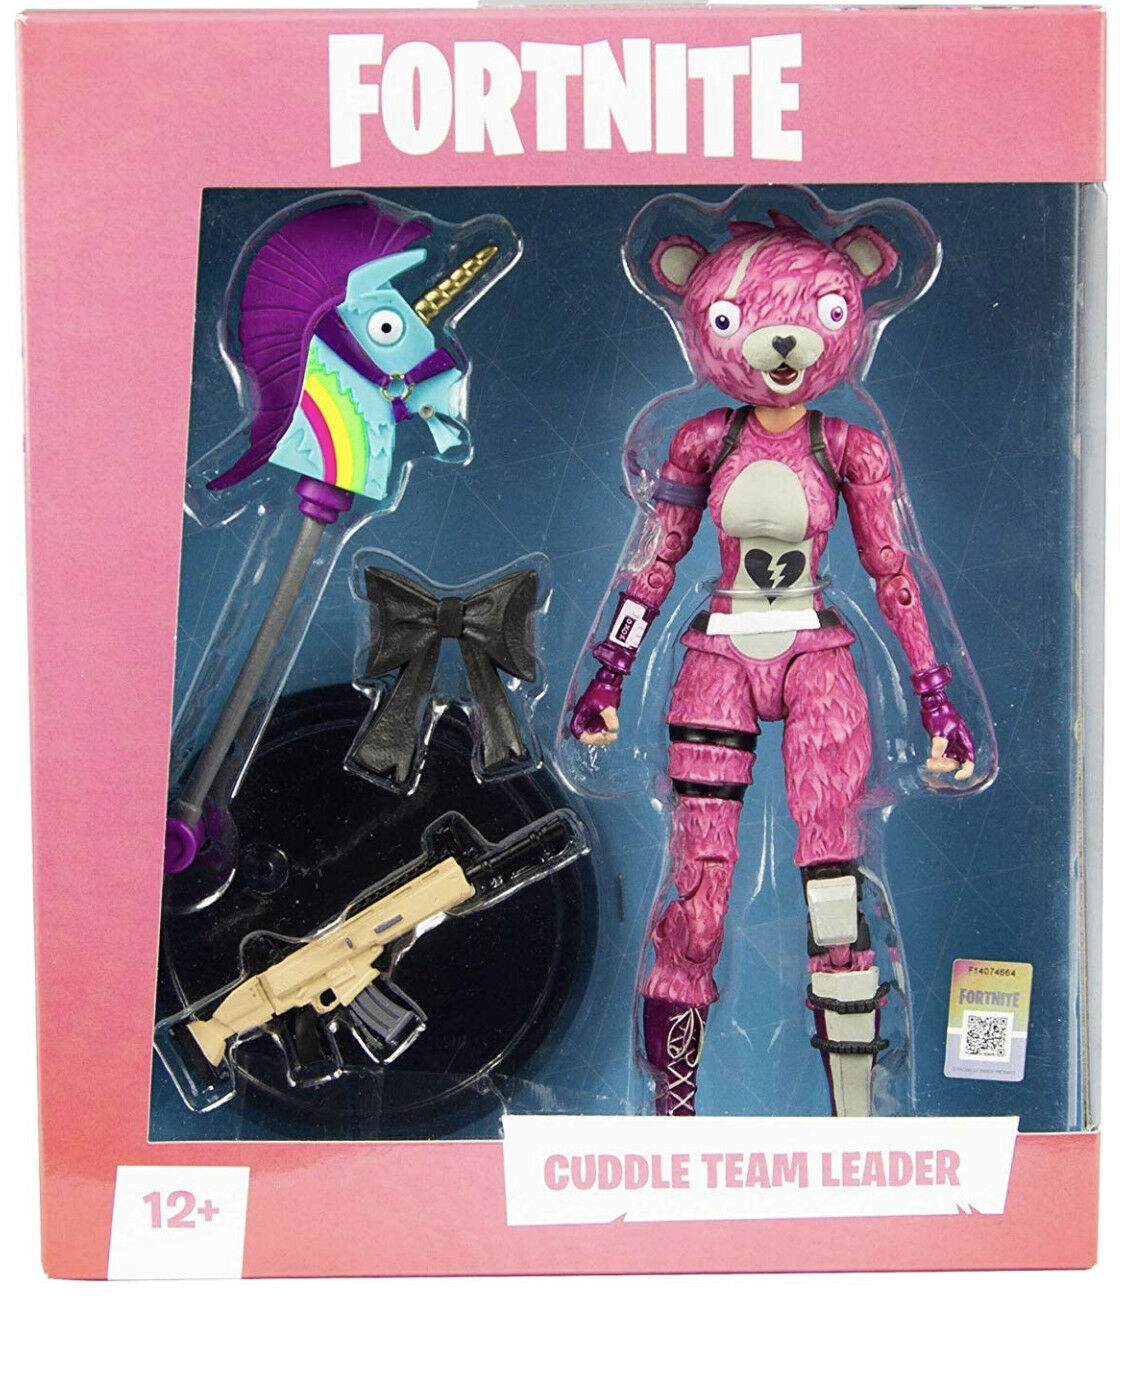 Fortnite Cuddle Team Leader 7 inch Action Figure by McFarlane Toys New